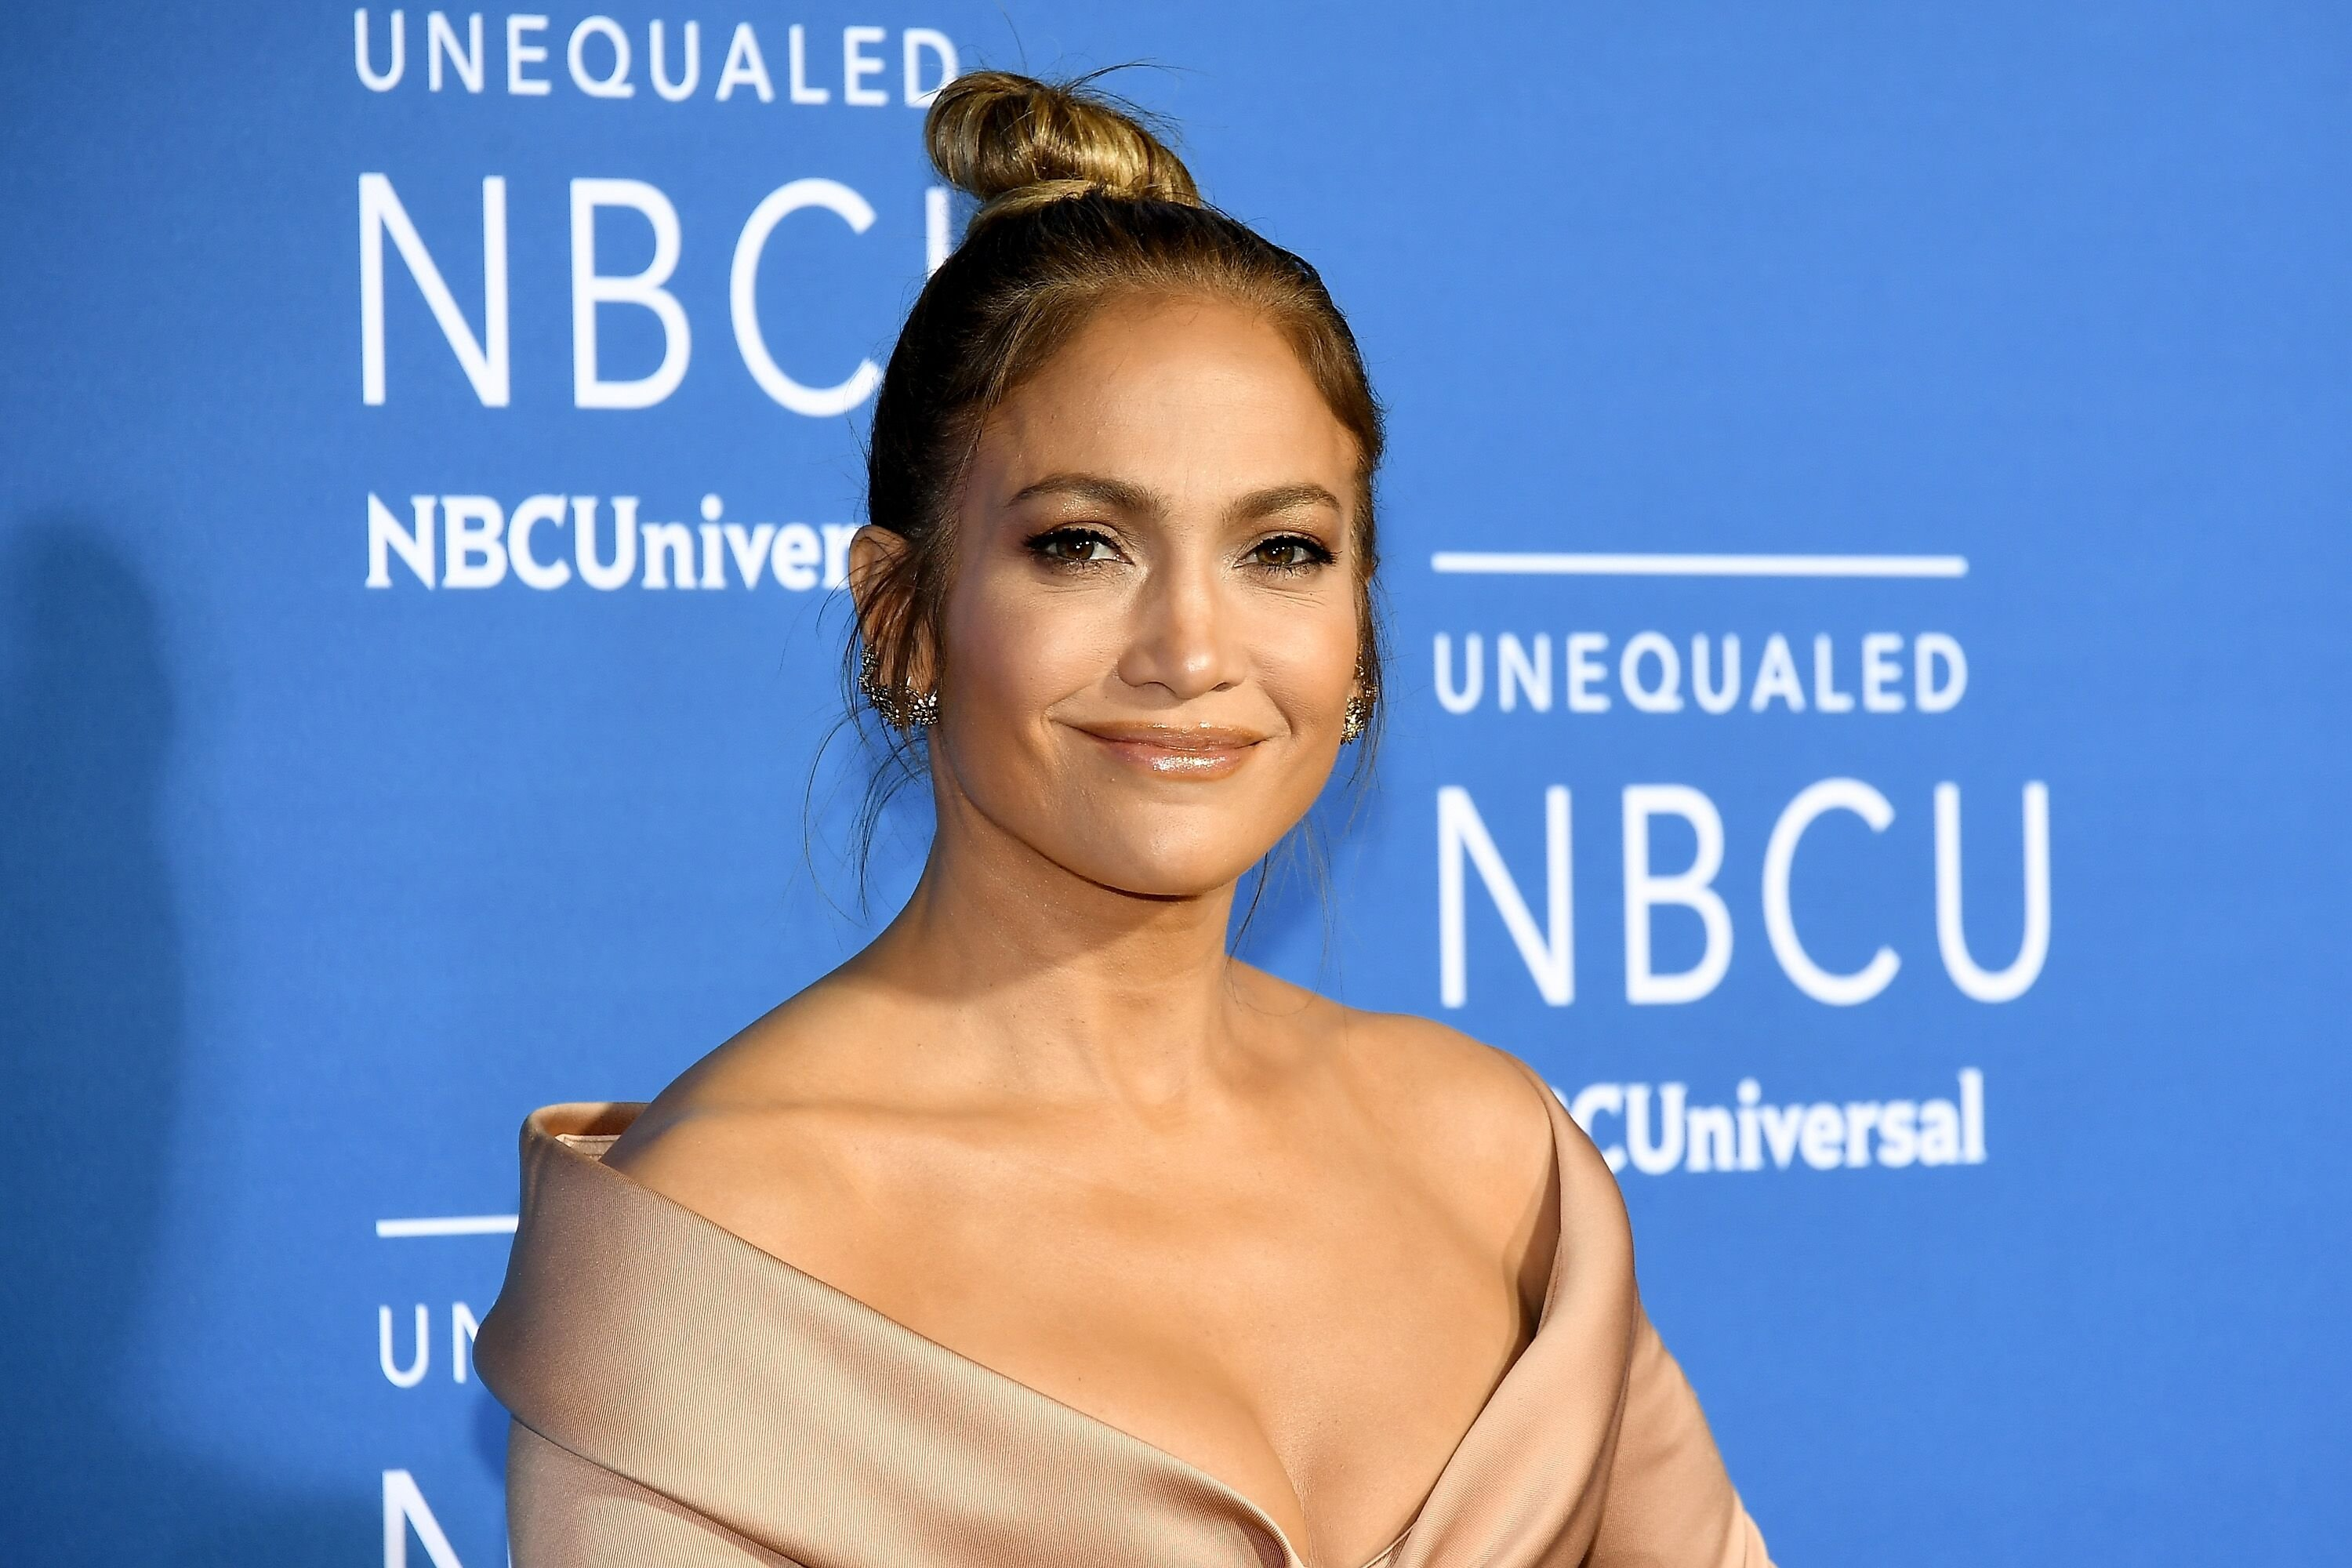 Jennifer Lopez attends the 2017 NBCUniversal Upfront at Radio City Music Hall on May 15, 2017 | Photo: Getty Images